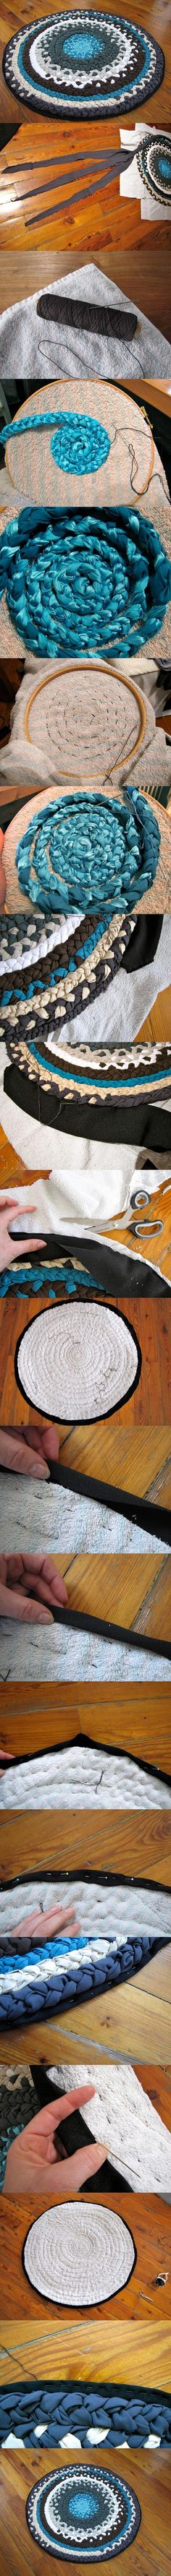 to attach rug to backing rather than sewing together. Could work on woven strips, also.